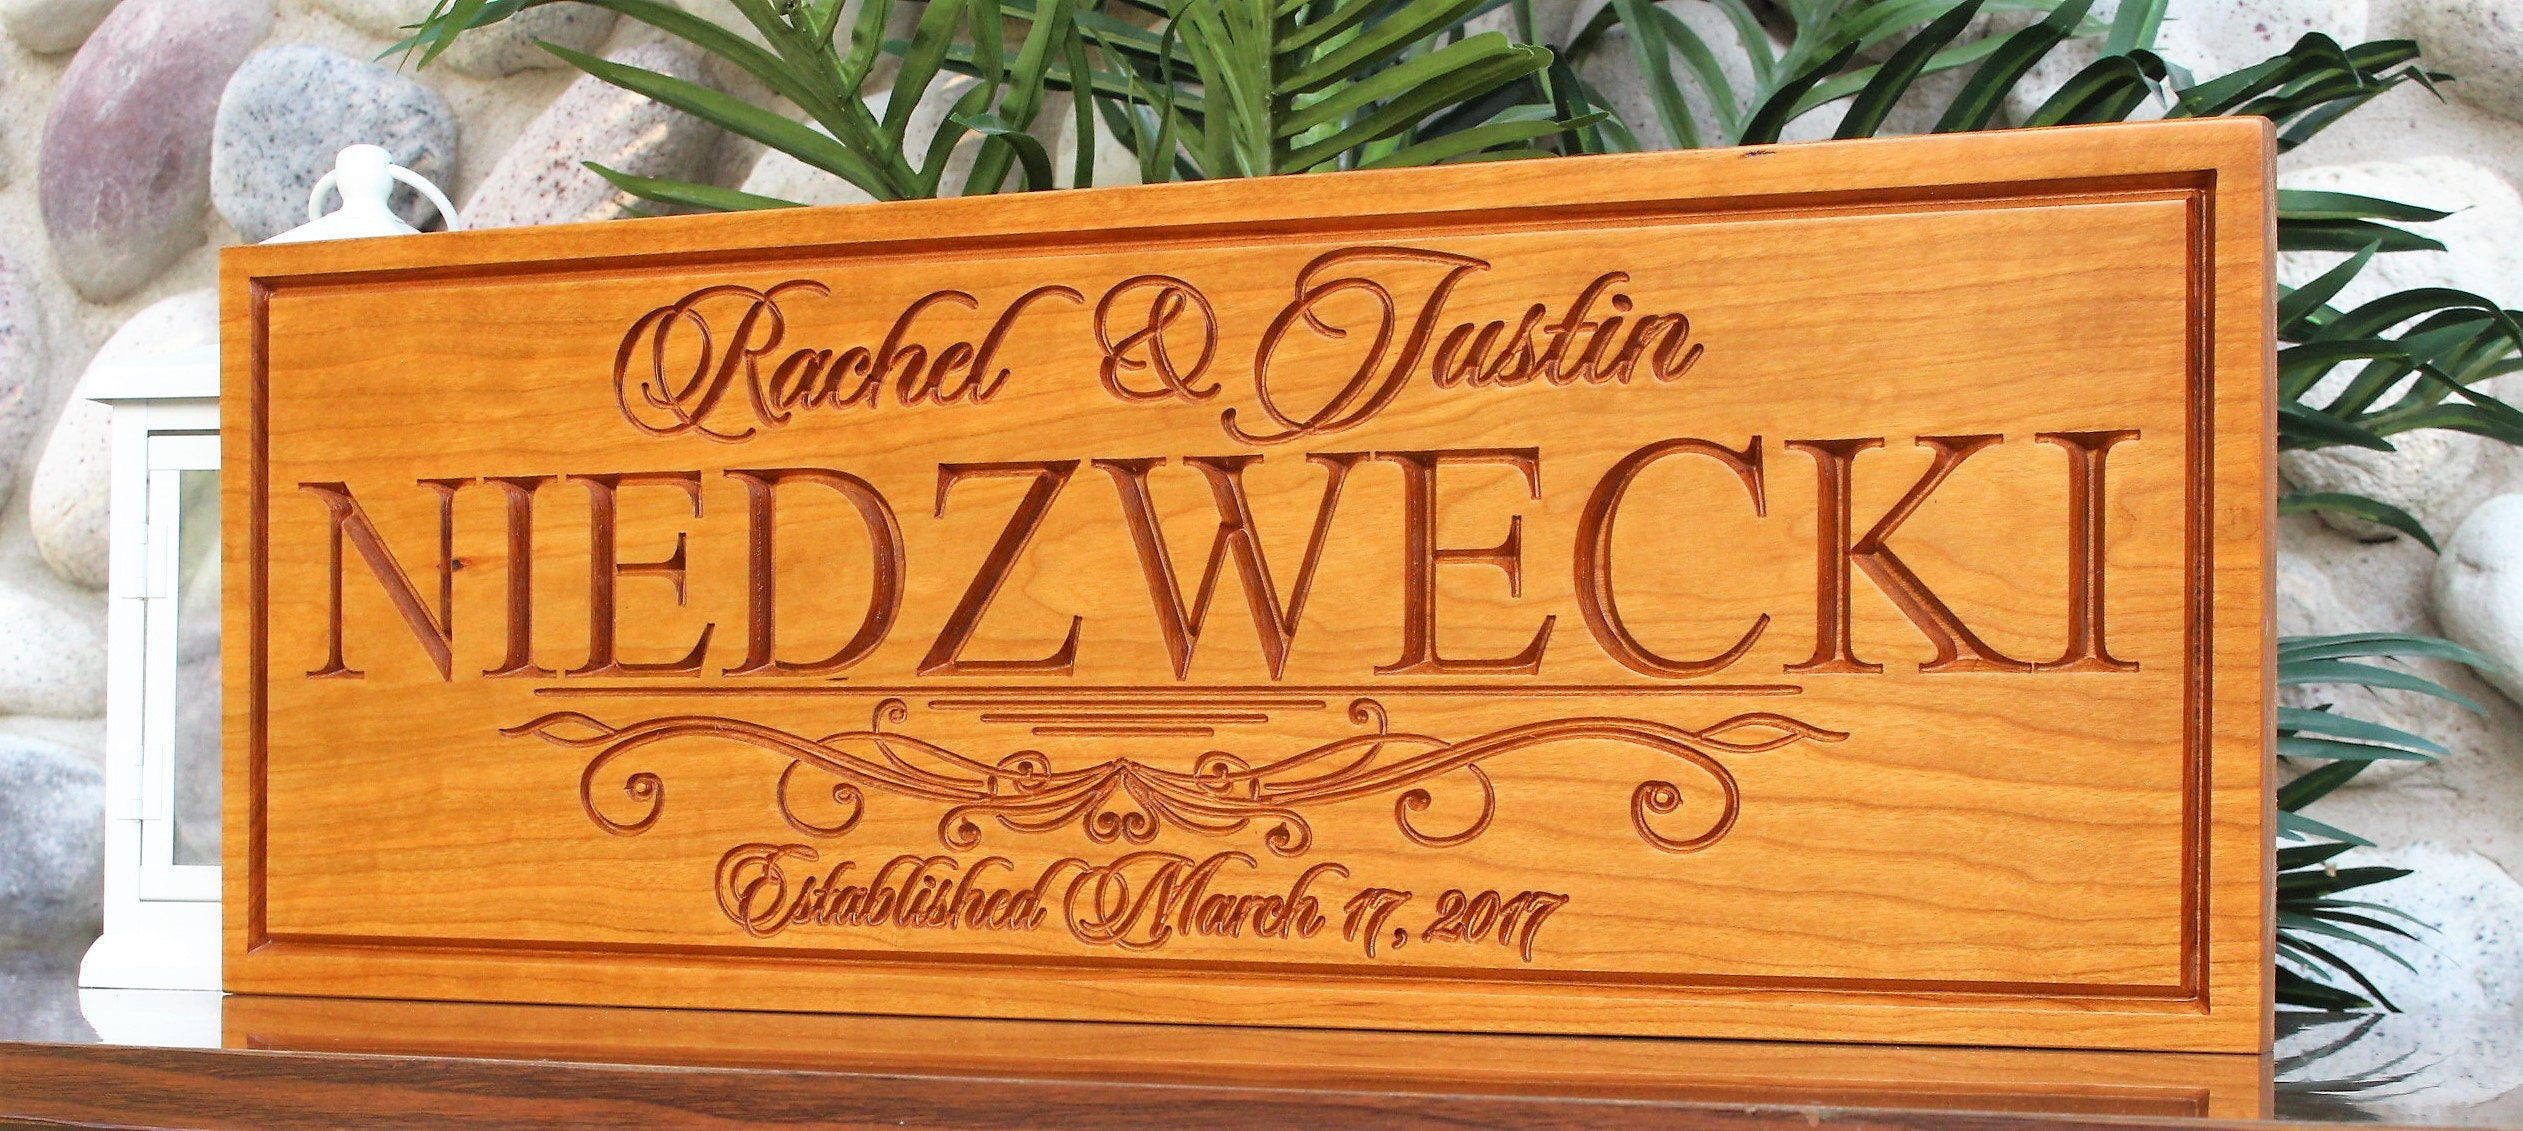 Personalized Wedding Gifts For Groom: Personalized Wedding Gift For The Couple-bride And Groom